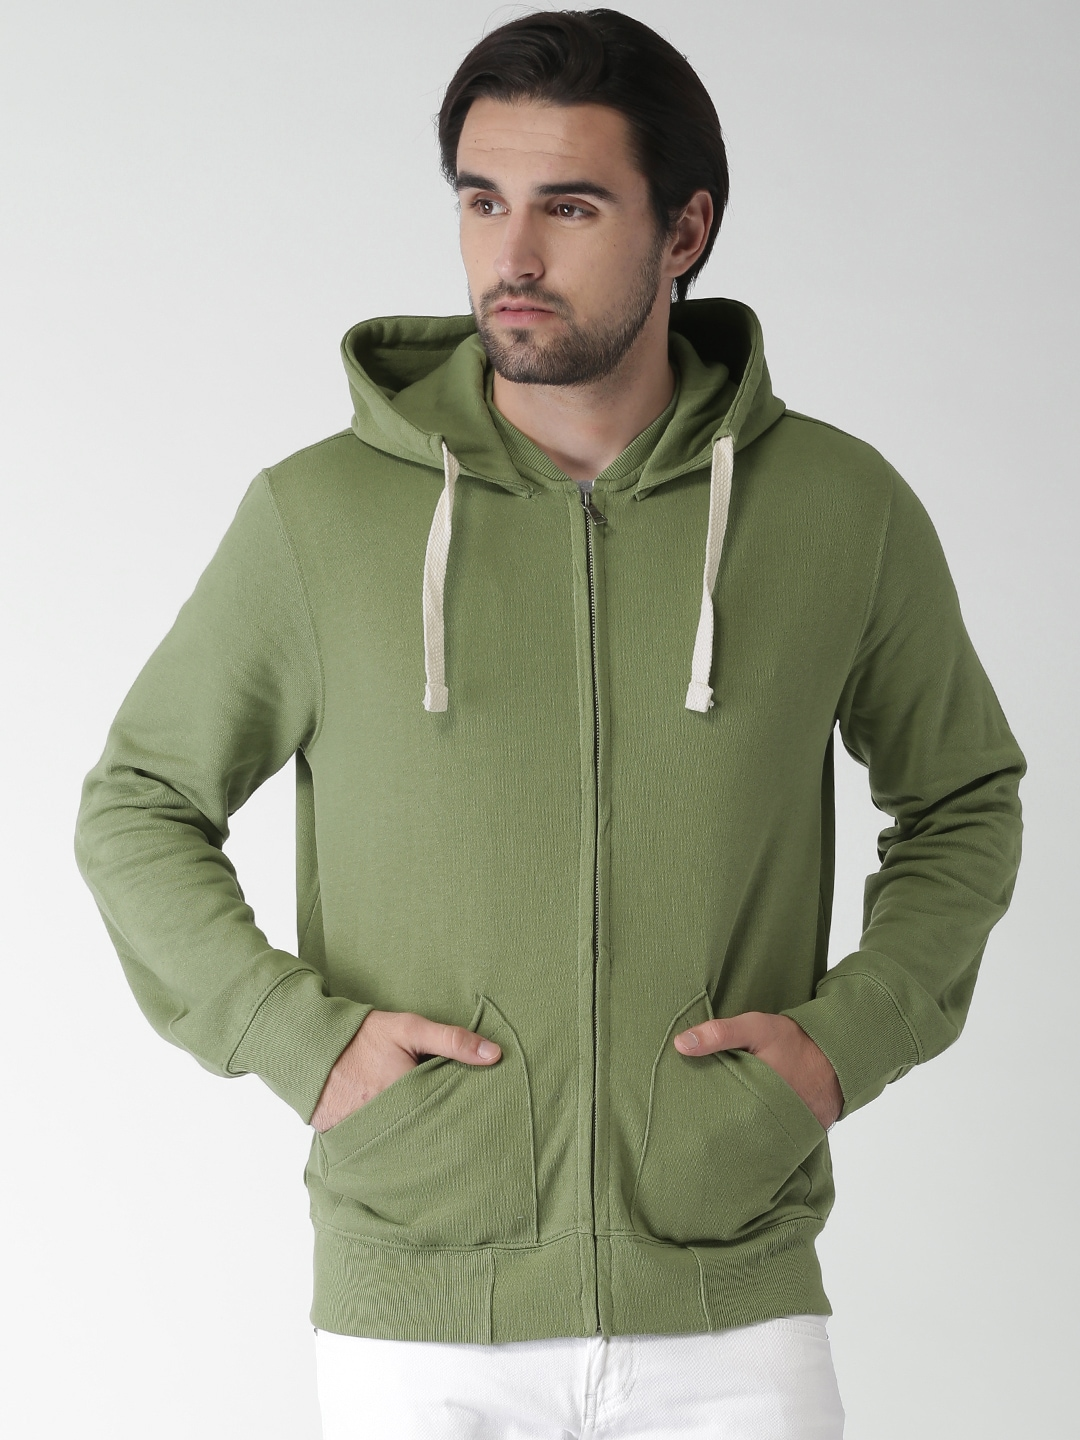 f14e3692400 Mens Hooded Sweatshirt Robes – EDGE Engineering and Consulting Limited